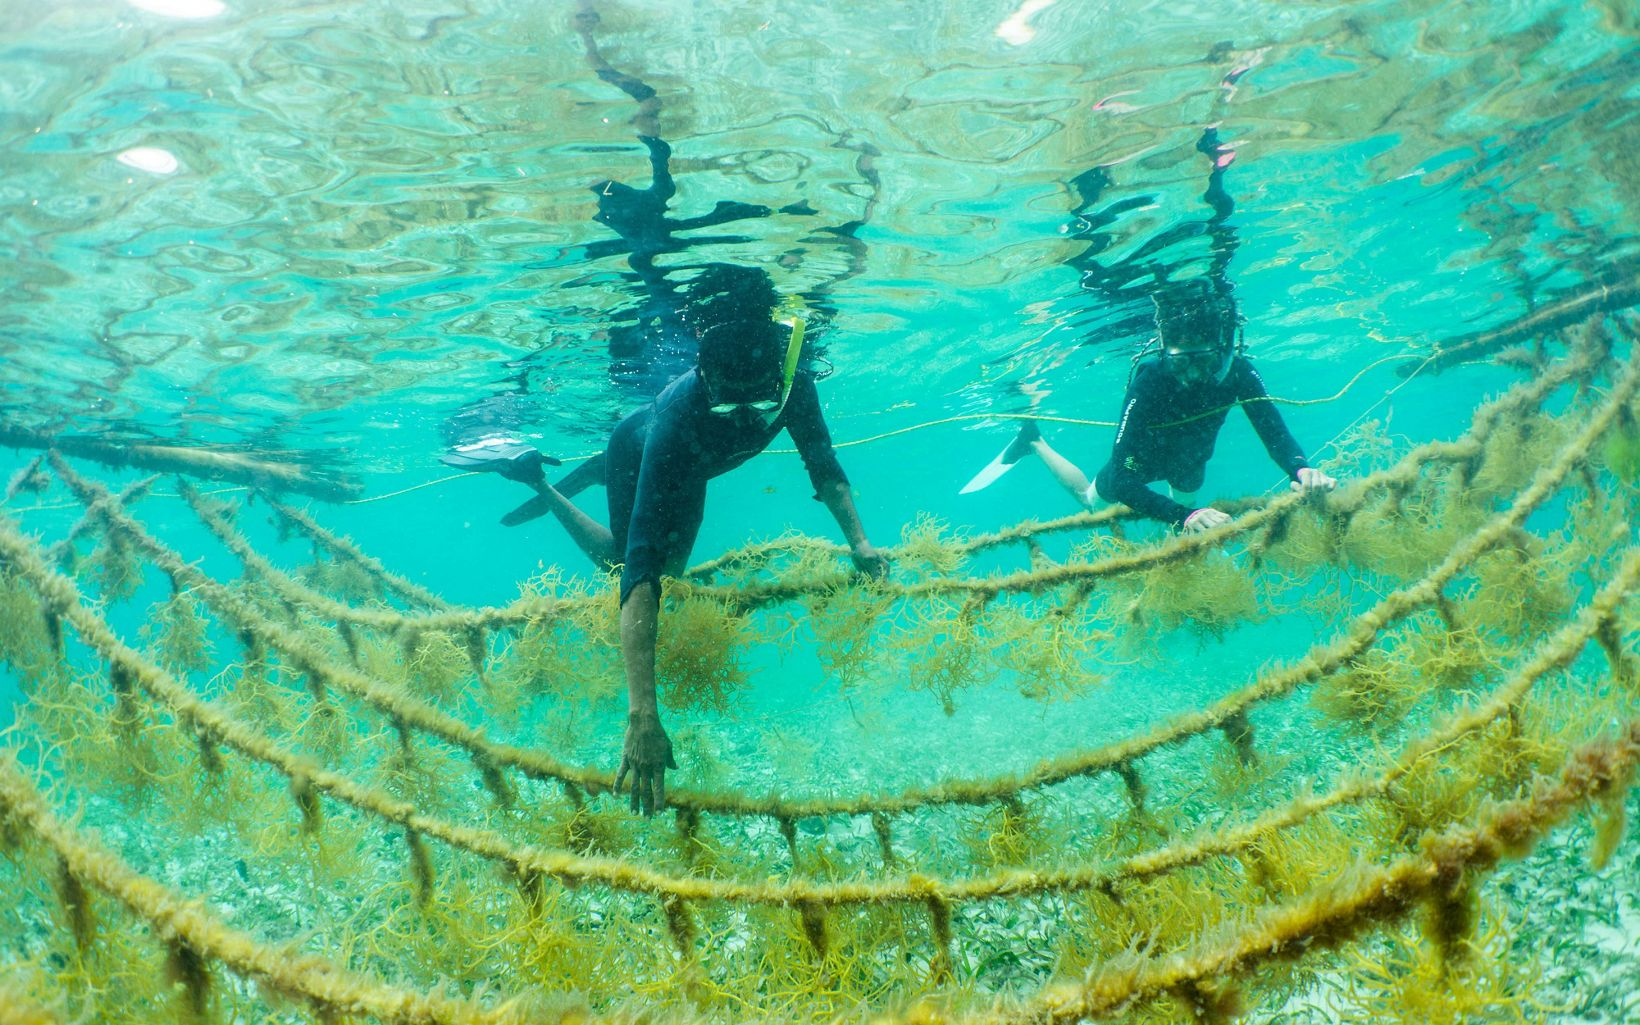 Mariko Wallen and Louis Godfrey tend to the seaweed on their farm in Placencia, Belize.